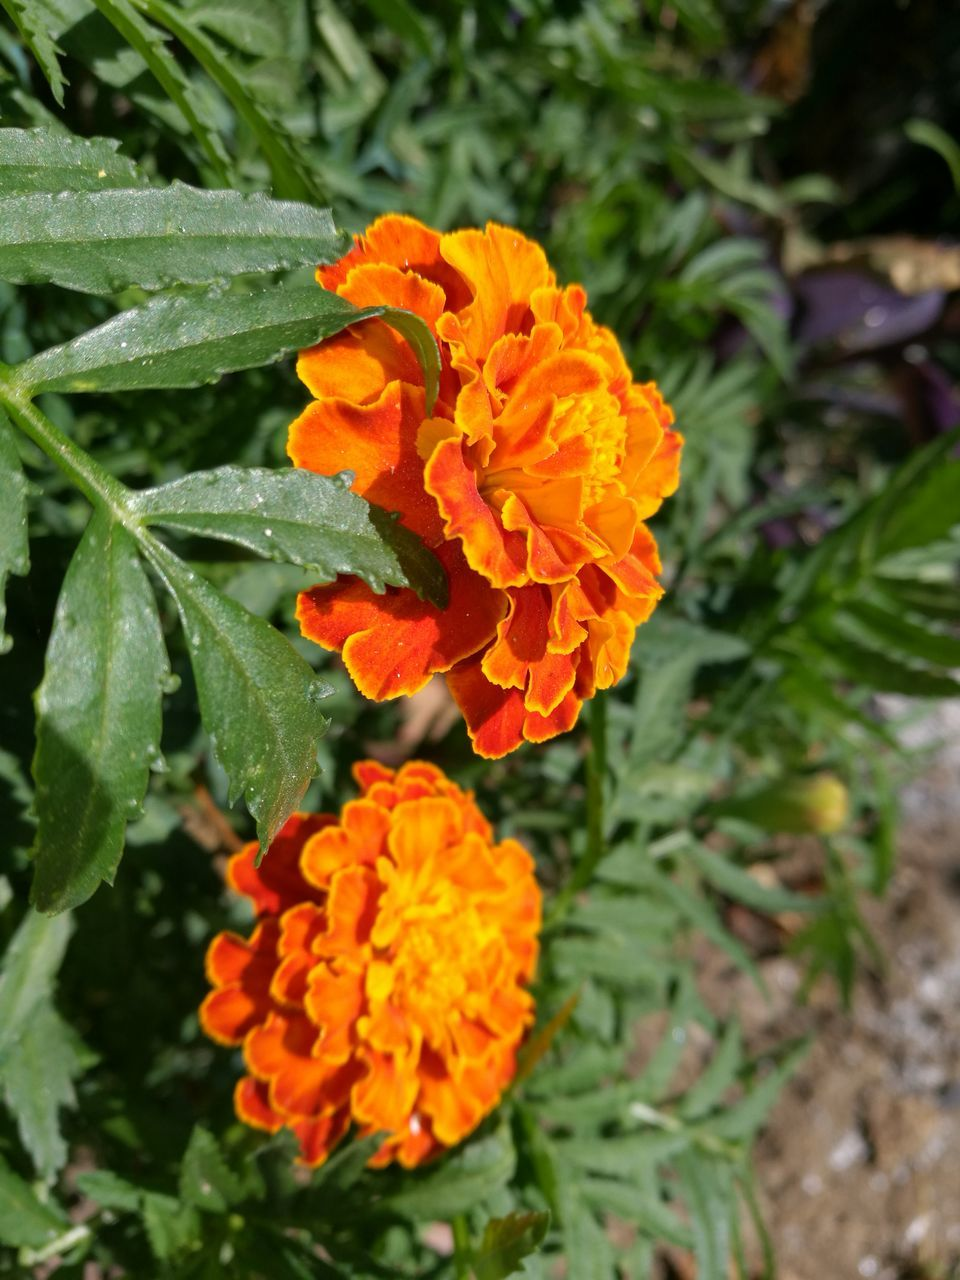 flower, growth, nature, beauty in nature, orange color, petal, freshness, plant, leaf, blooming, flower head, no people, outdoors, day, fragility, marigold, close-up